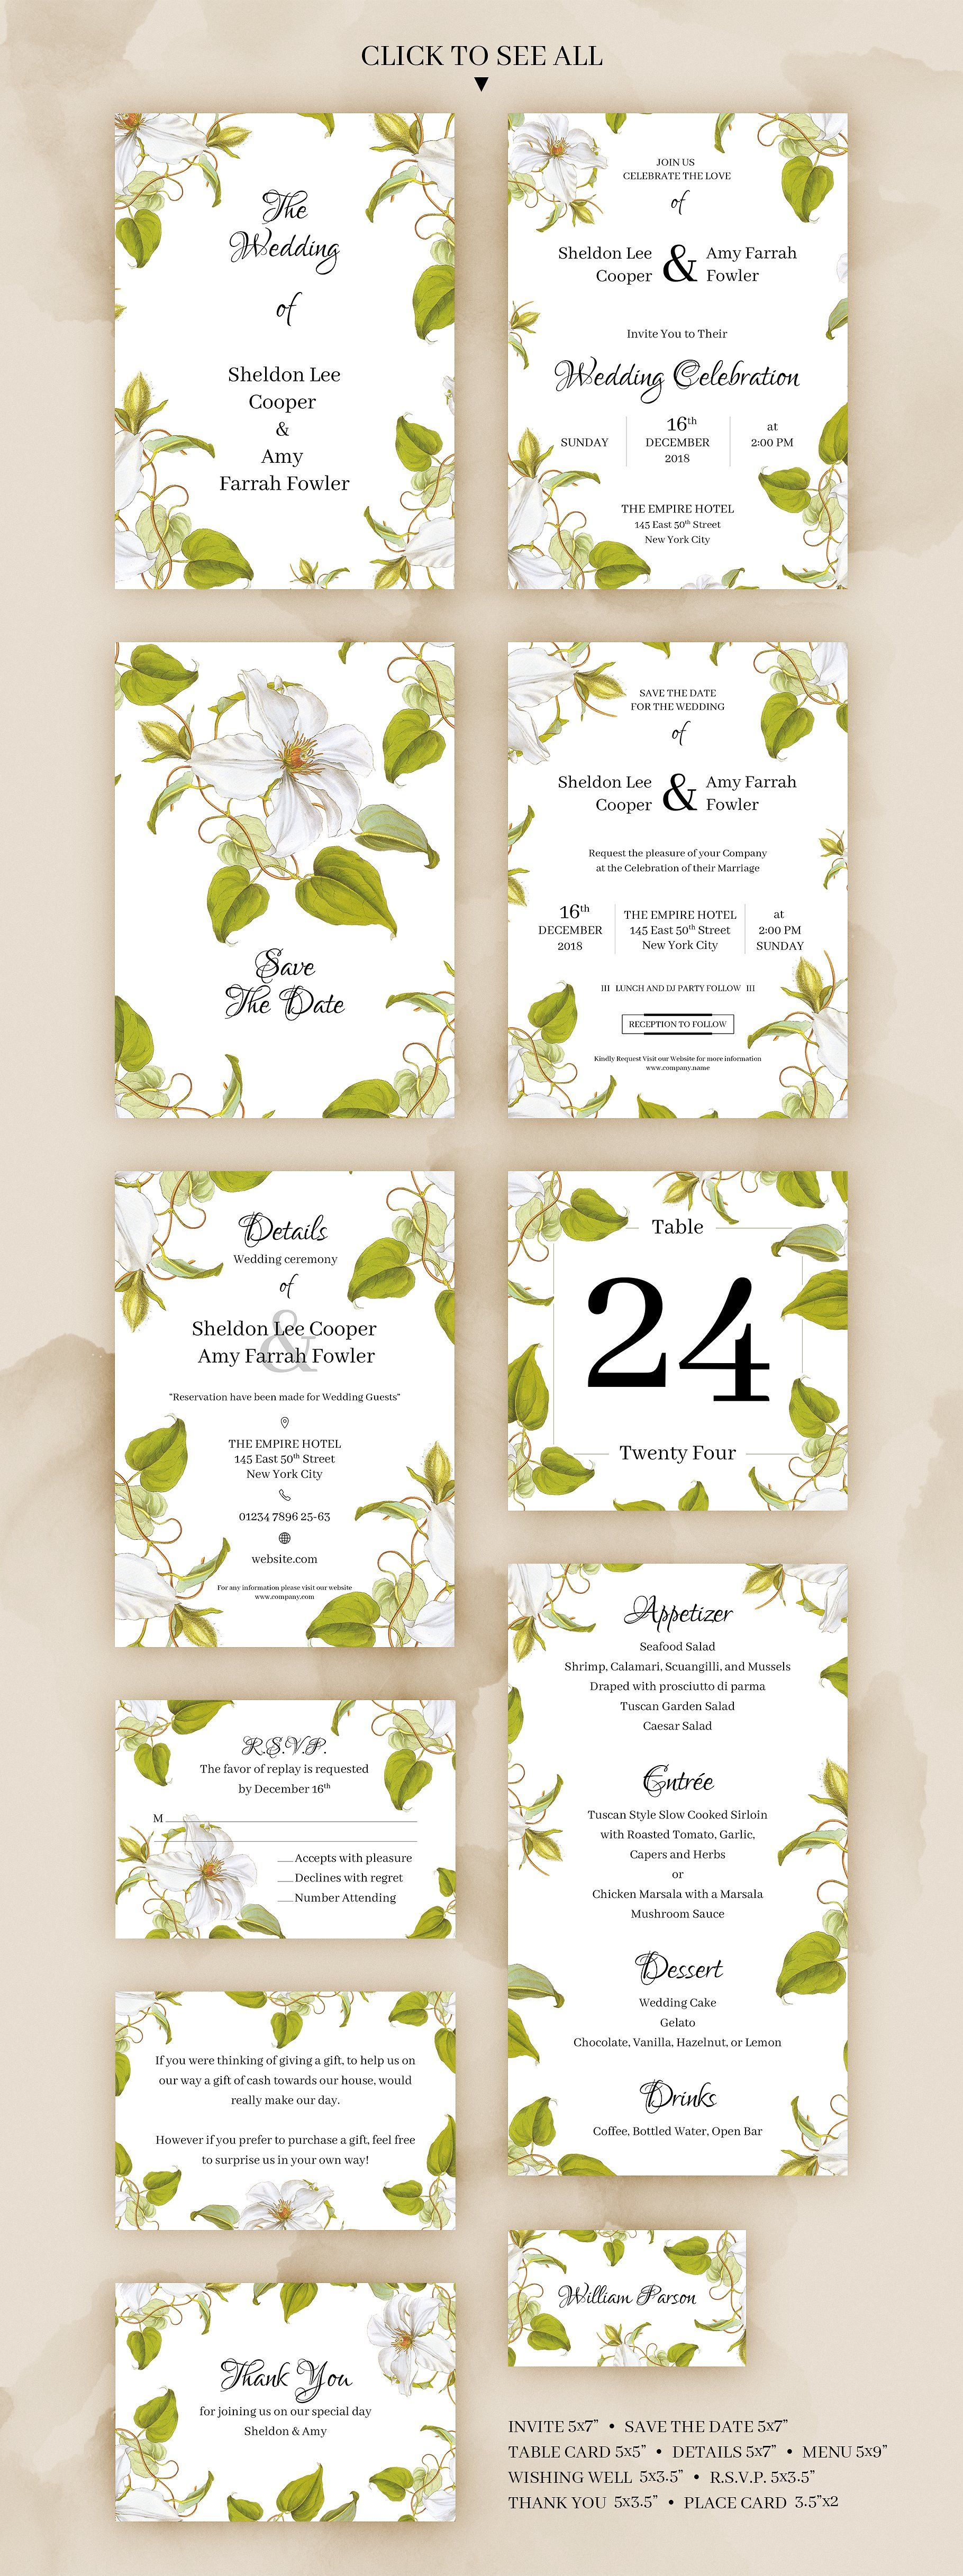 clematis wedding invitation place card table numbers and rsvp